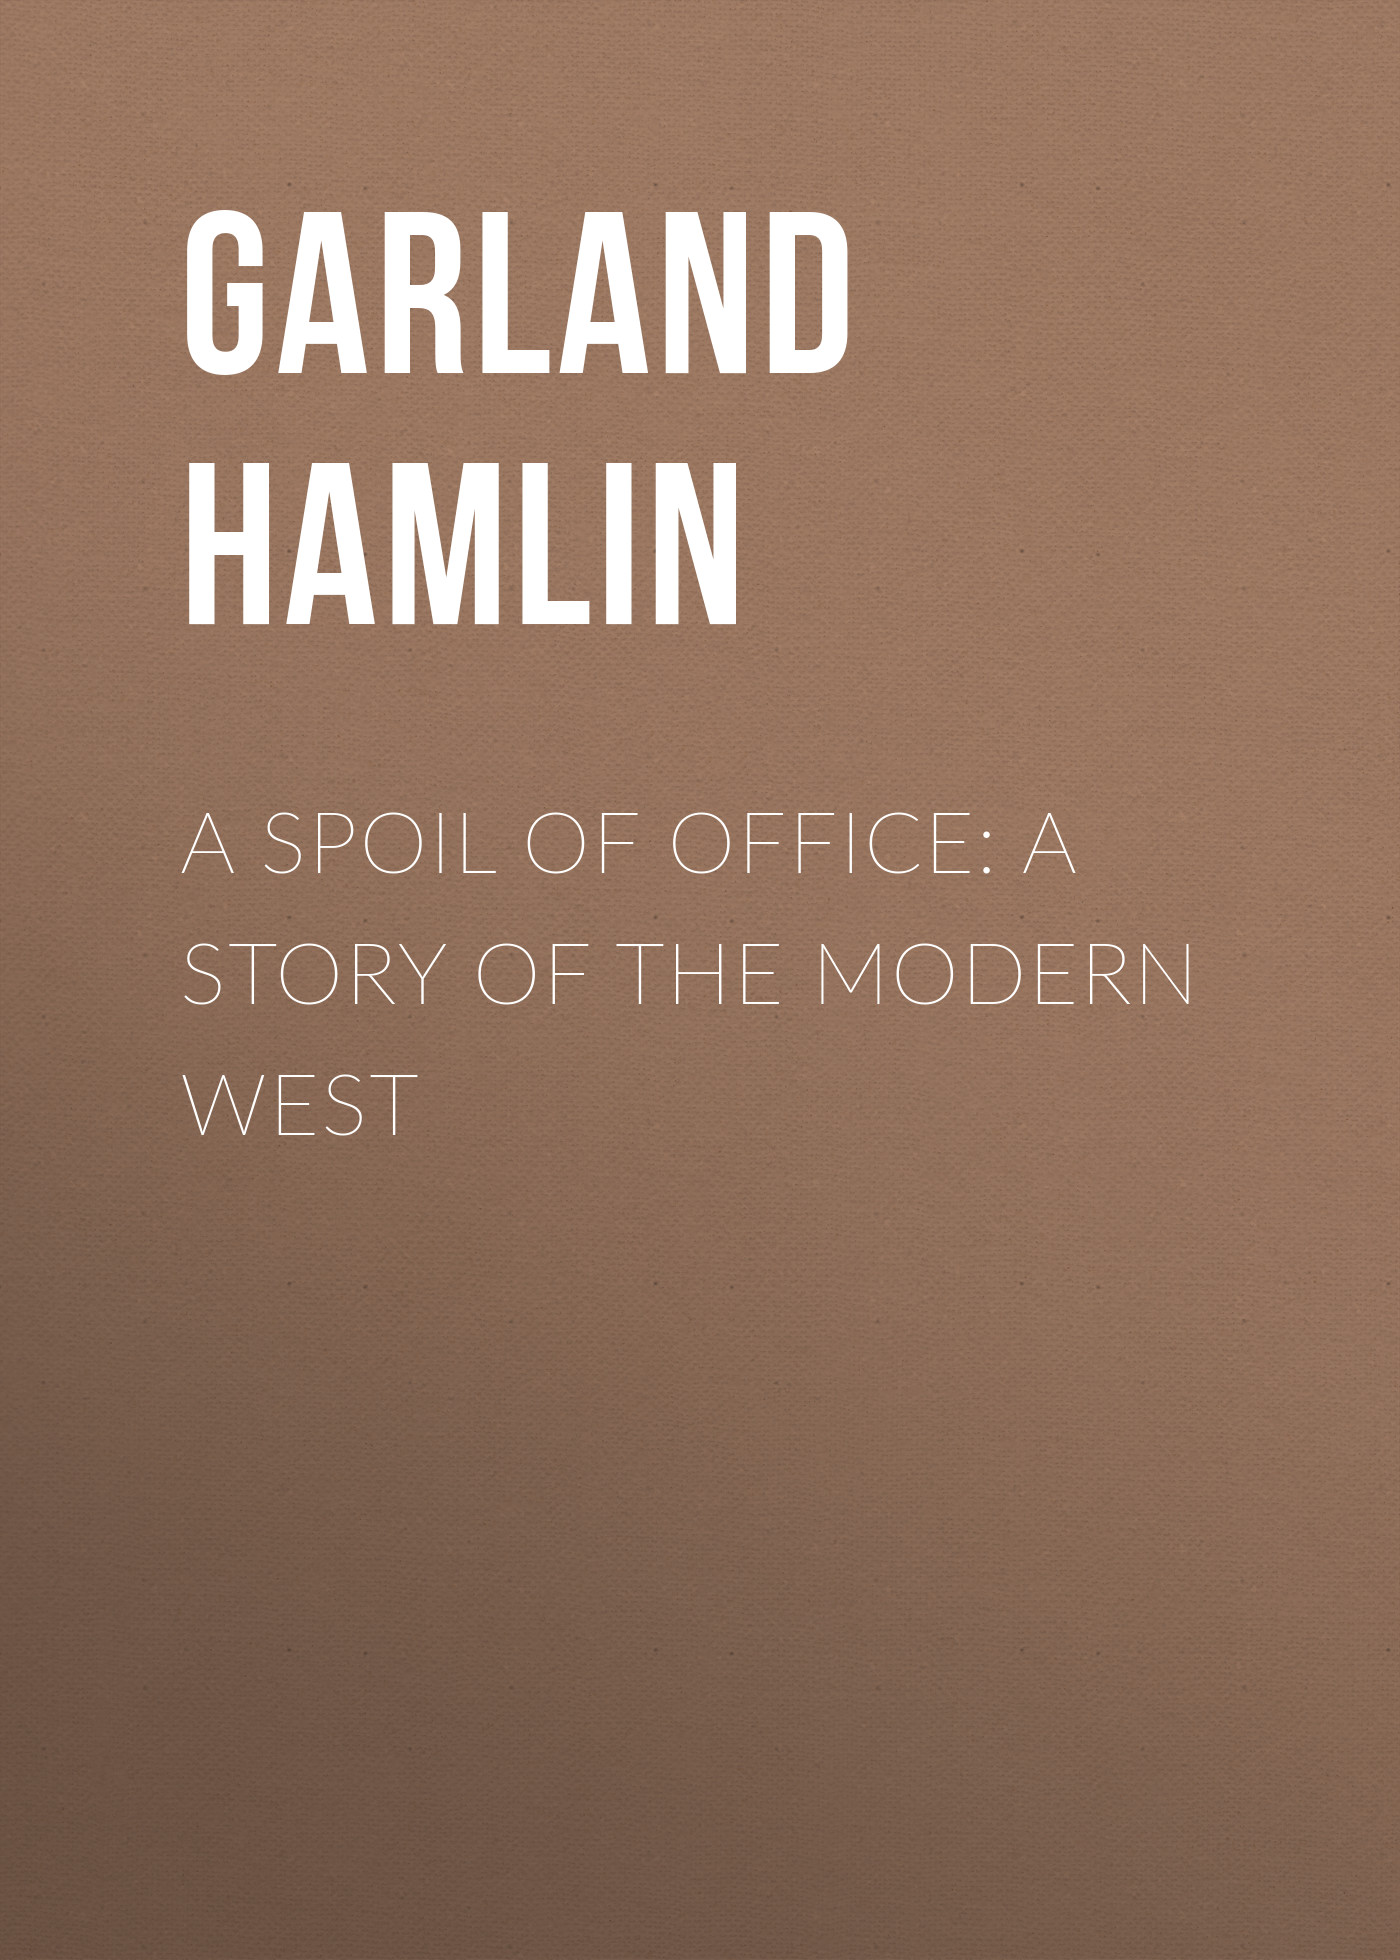 Garland Hamlin A Spoil of Office: A Story of the Modern West обувь на высокой платформе long high b 10